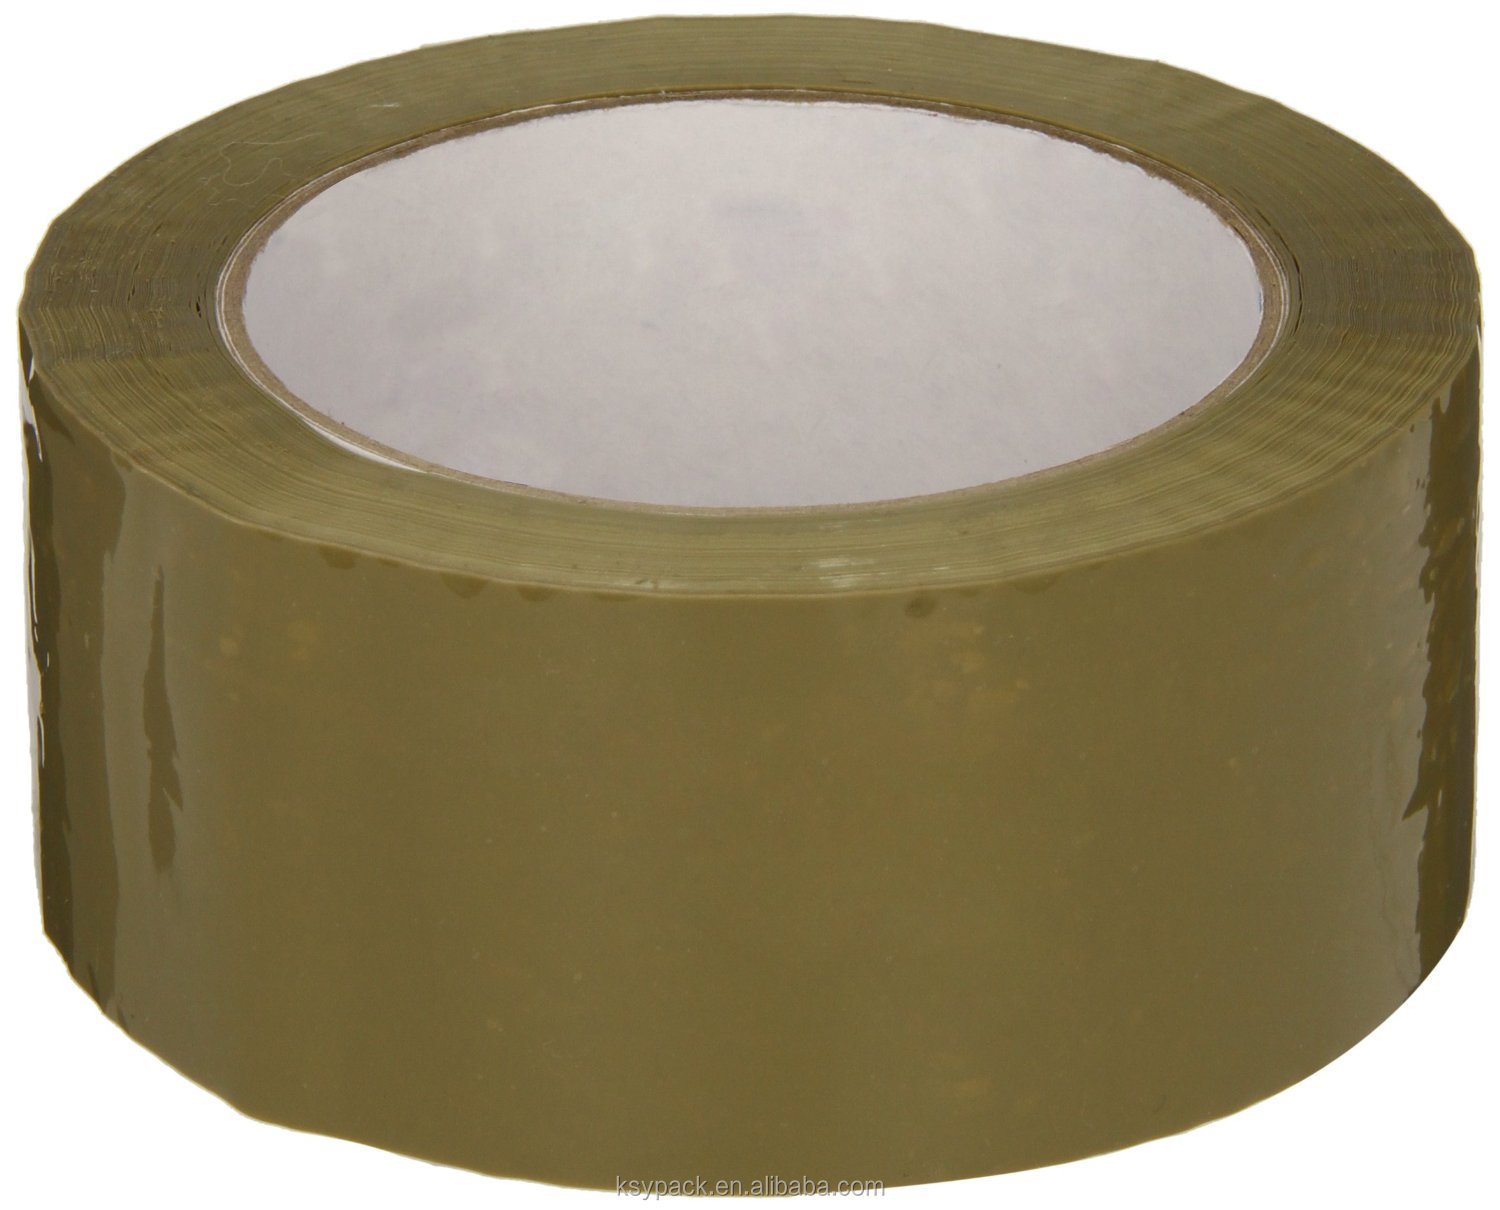 Synthetic Rubber/Resin Medium Grade Hot Melt Adhesive Tape